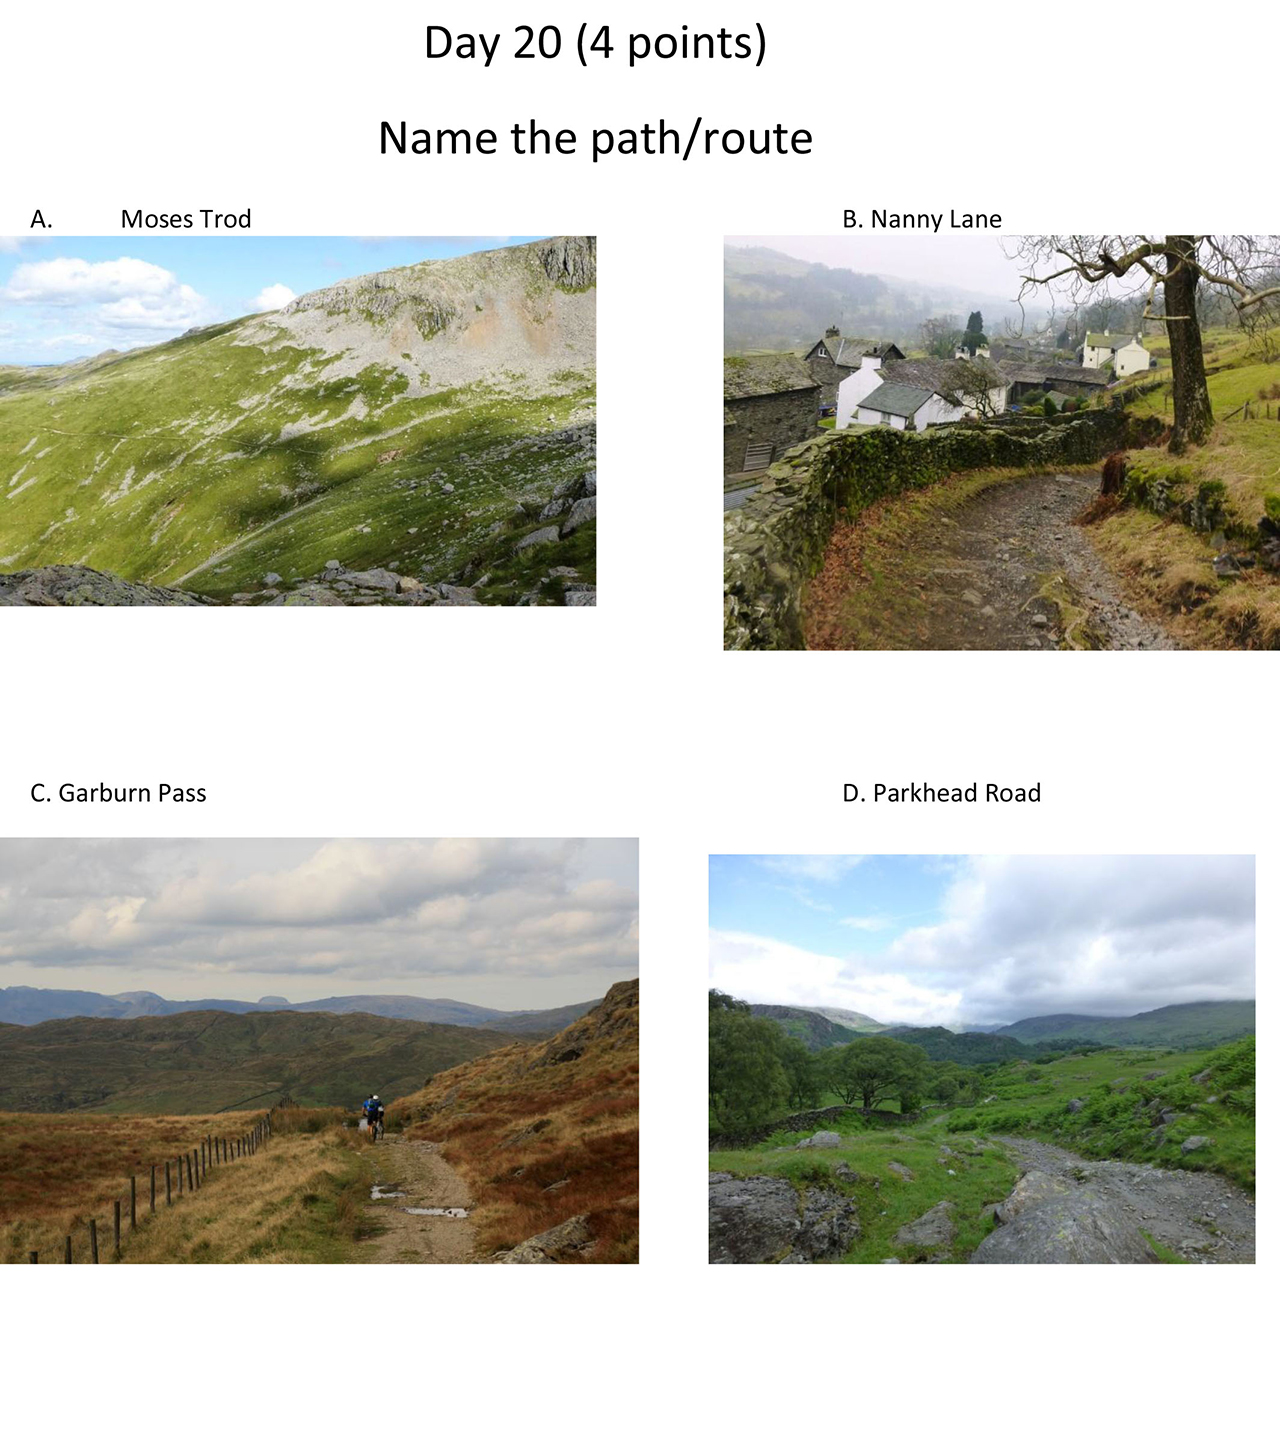 Day-20-Name-the-path---pass